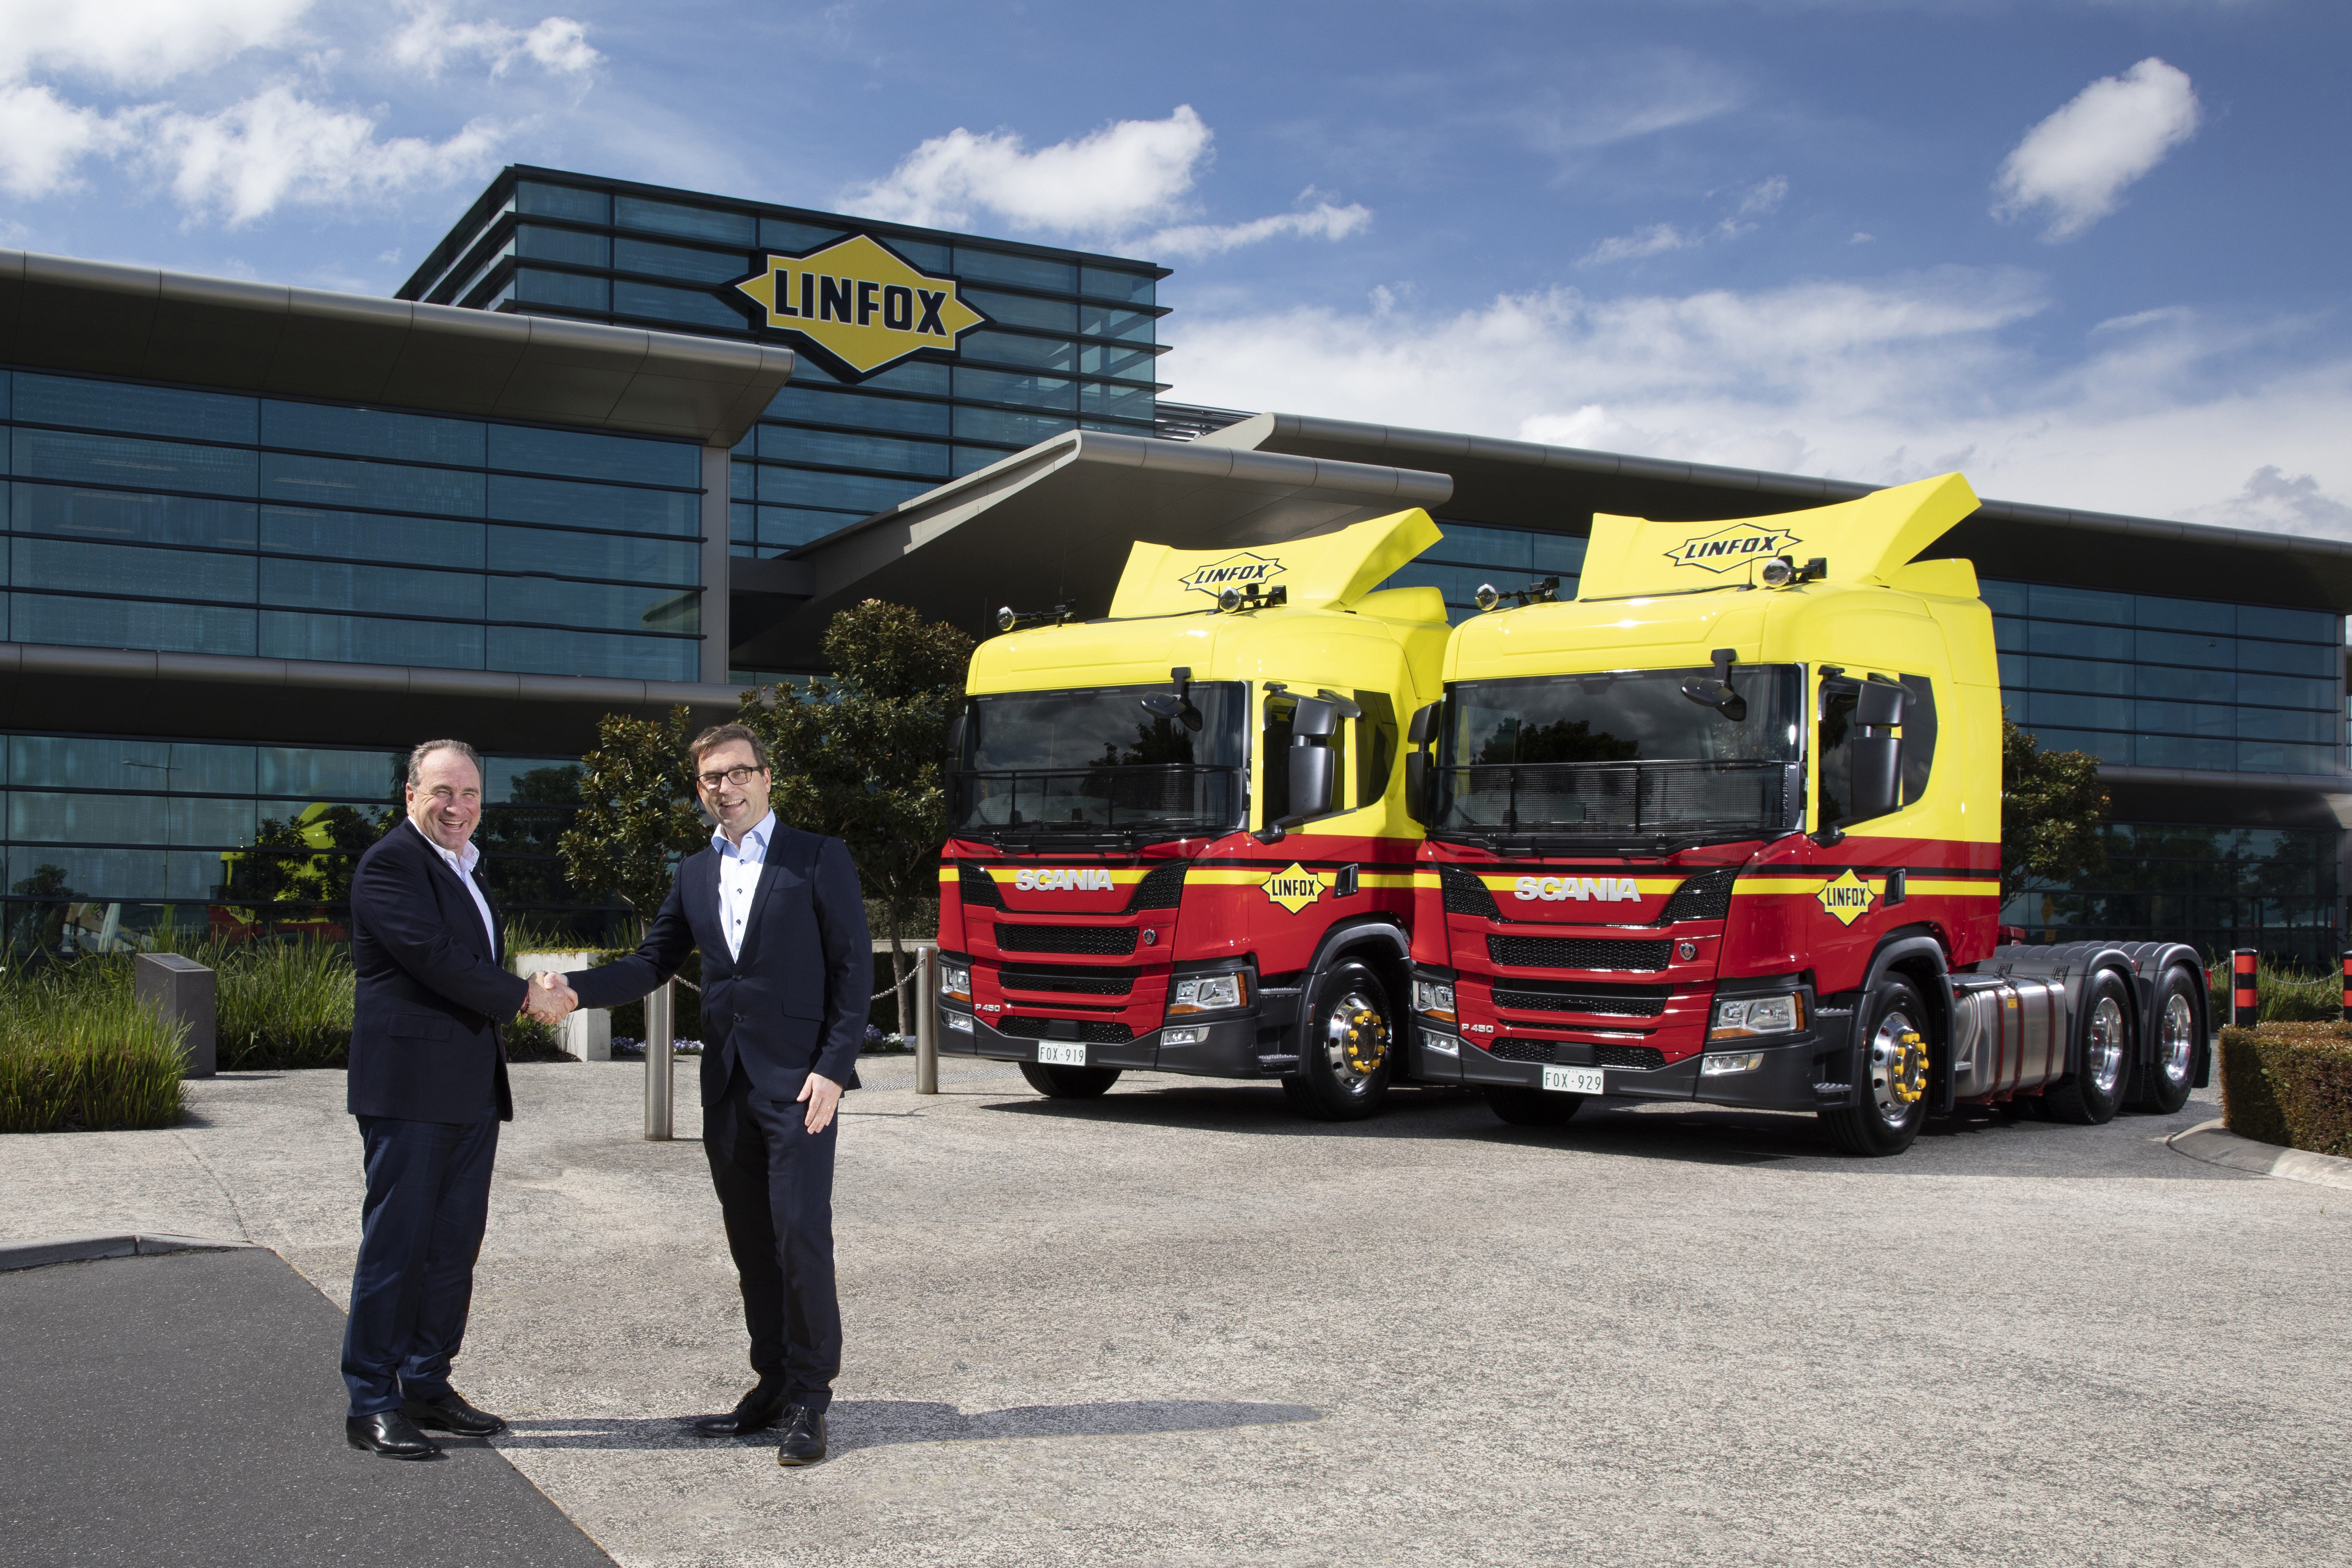 Peter Fox takes delivery from Mikael Jansson of the first Scania NTG P 450 Euro 6 prime movers